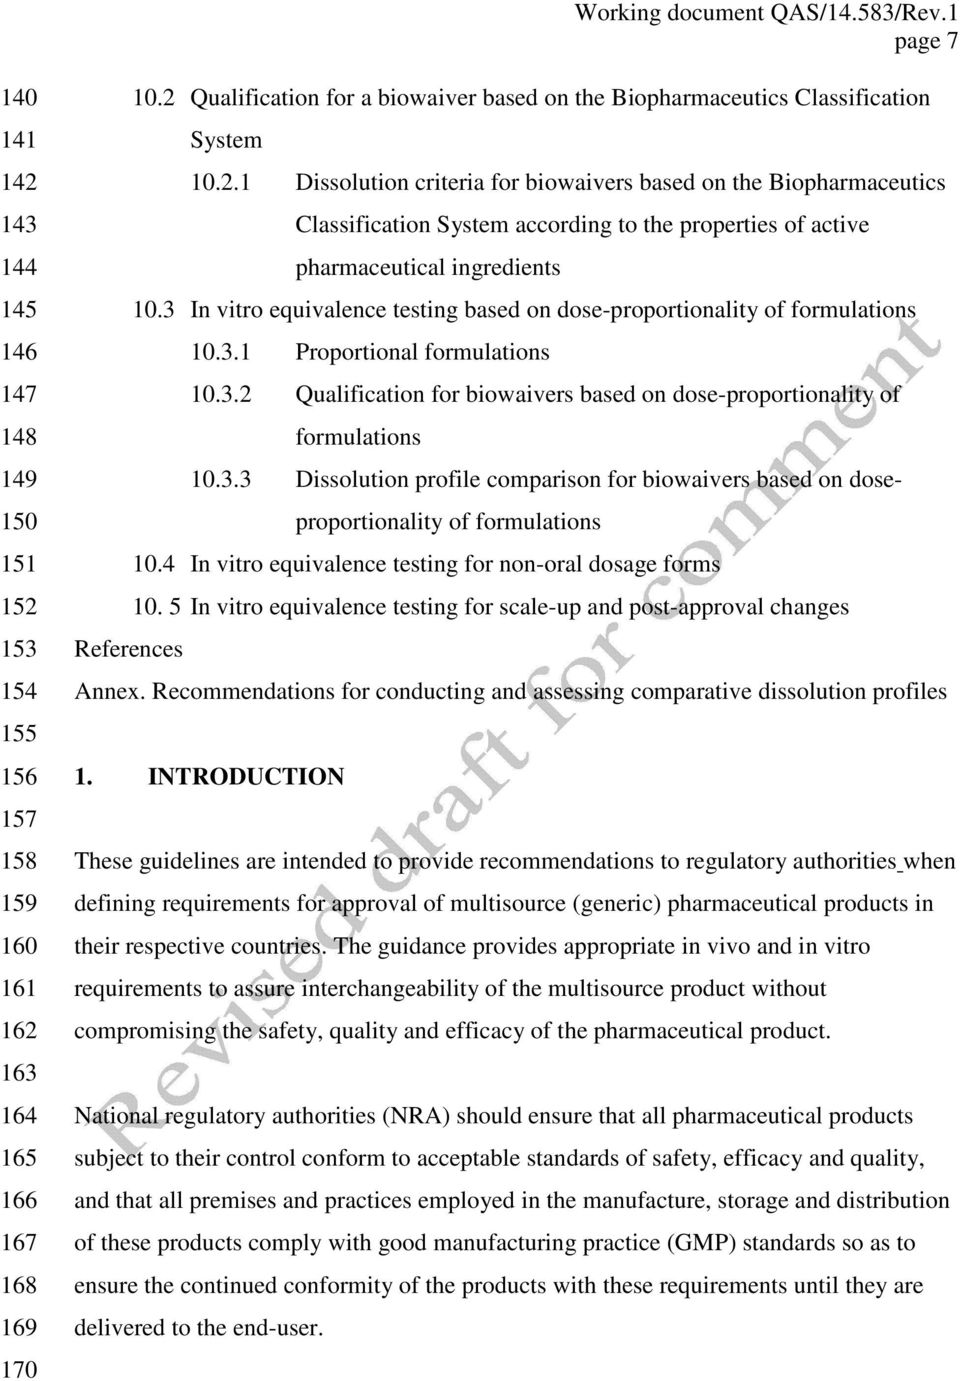 3 In vitro equivalence testing based on dose-proportionality of formulations 10.3.1 Proportional formulations 10.3.2 Qualification for biowaivers based on dose-proportionality of formulations 10.3.3 Dissolution profile comparison for biowaivers based on doseproportionality of formulations 10.